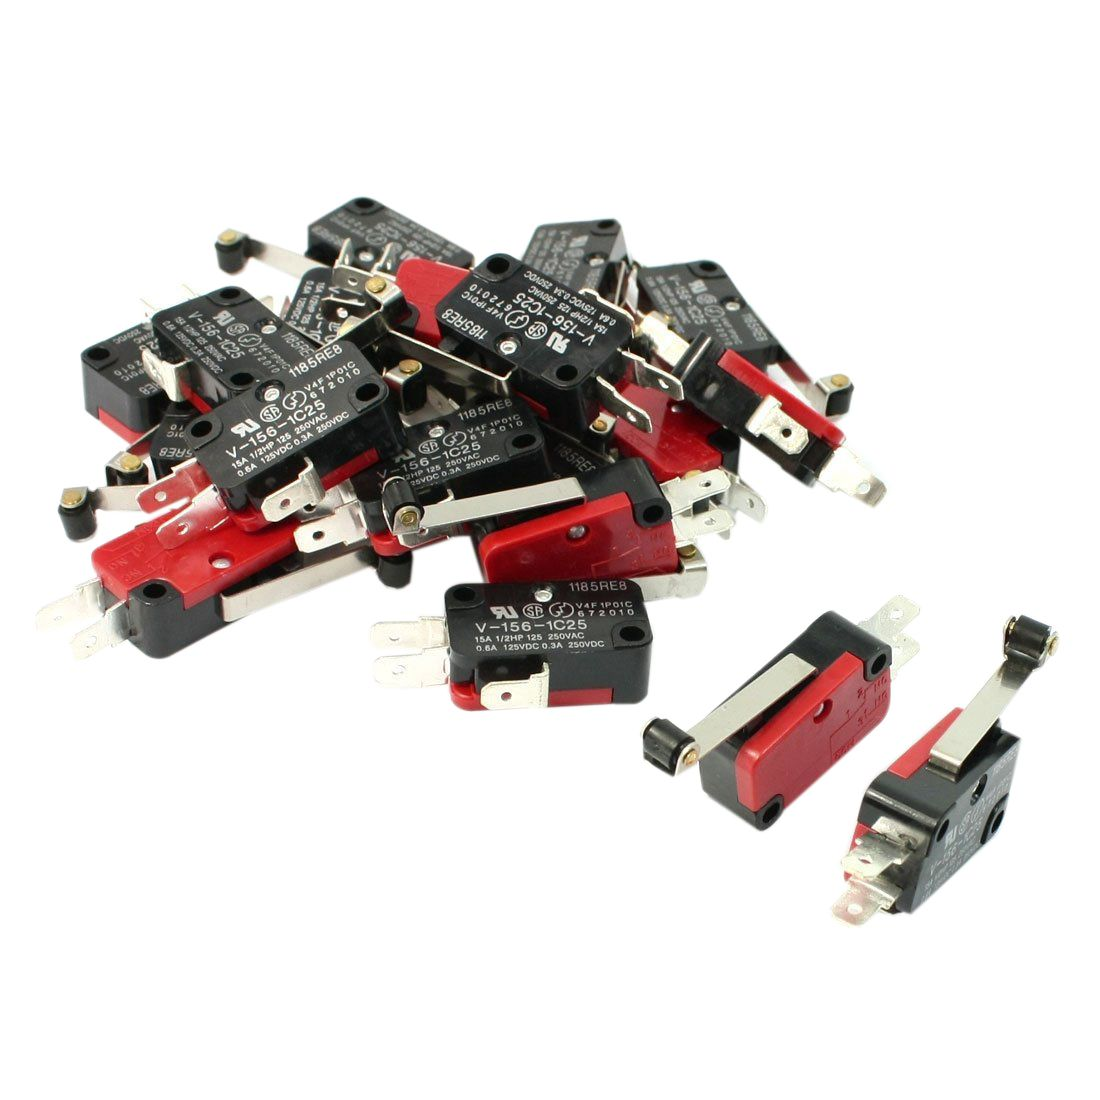 Promotion 20 Pcs Mini Micro Limit Switch Long Roller Lever Arm Spdt With Snap Action